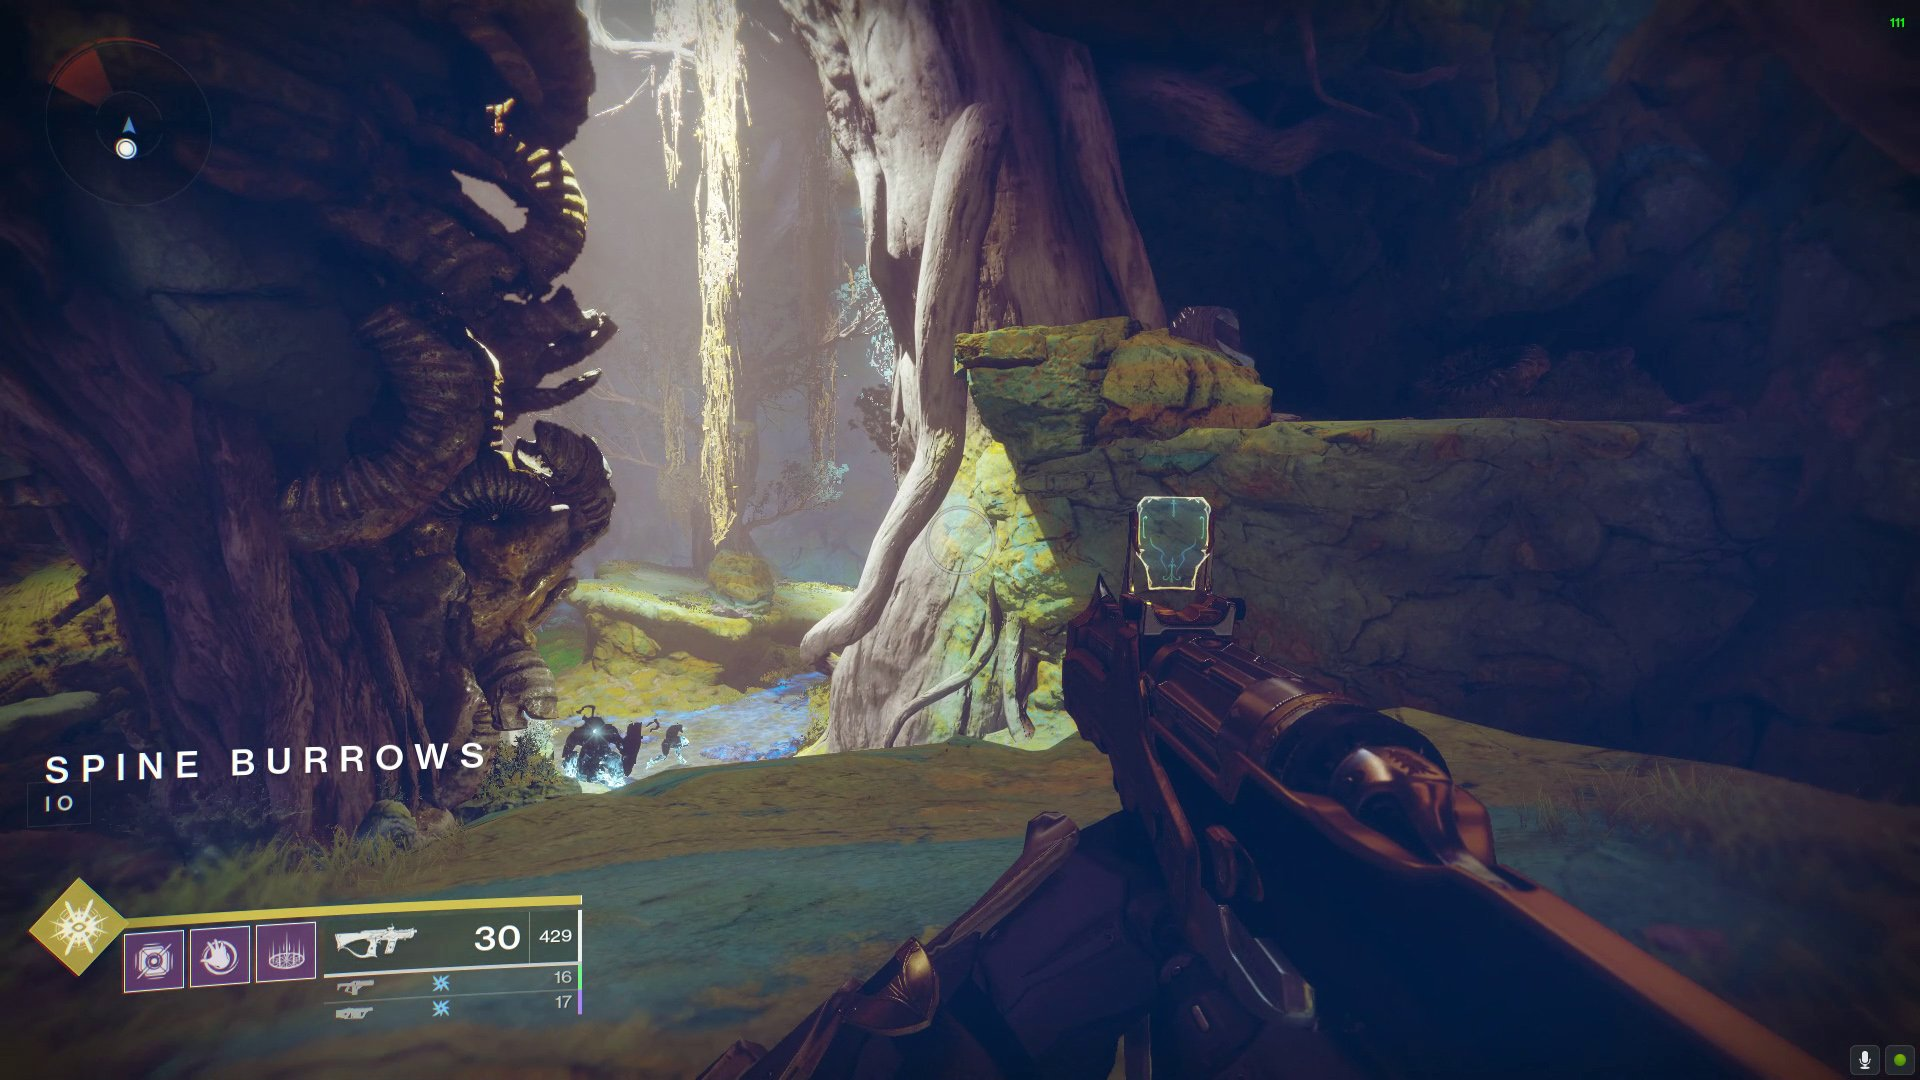 Spine Burrows Imperial Treasure location in Destiny 2